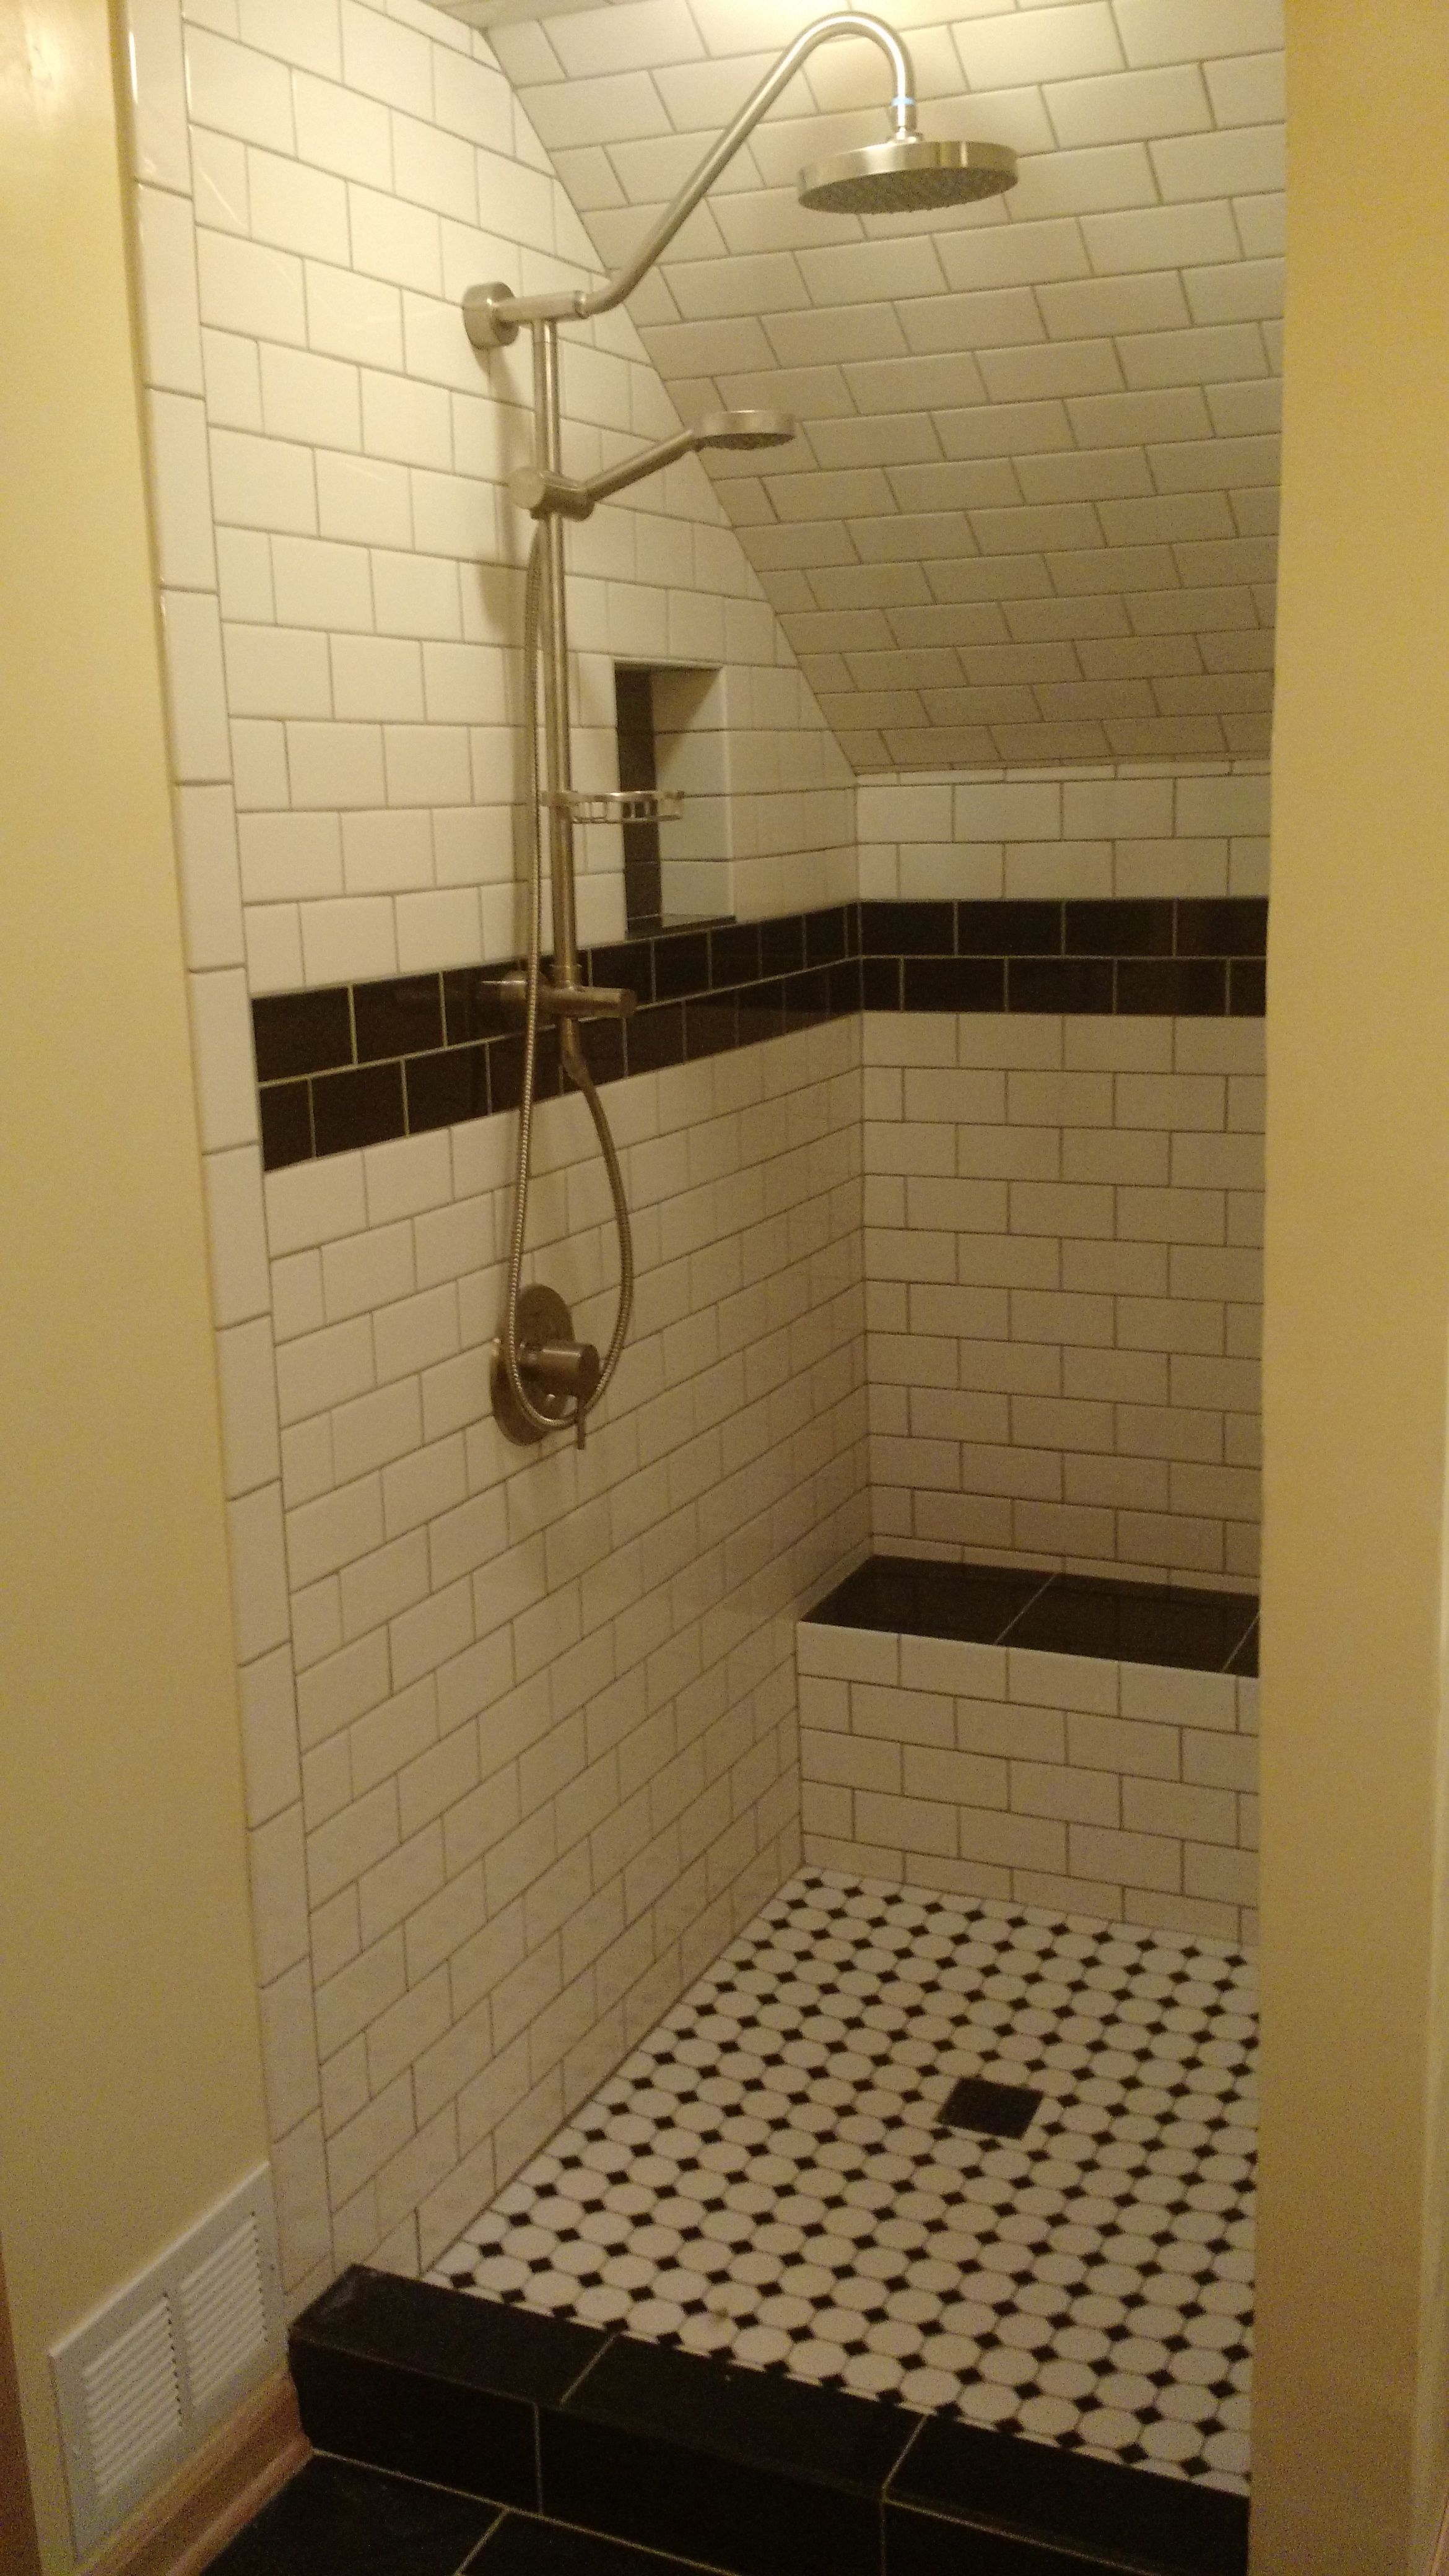 After Shower With Fixtures Installed Awaiting Door Bertini Tile Created The Pan Bench And Radiant Heat Floor